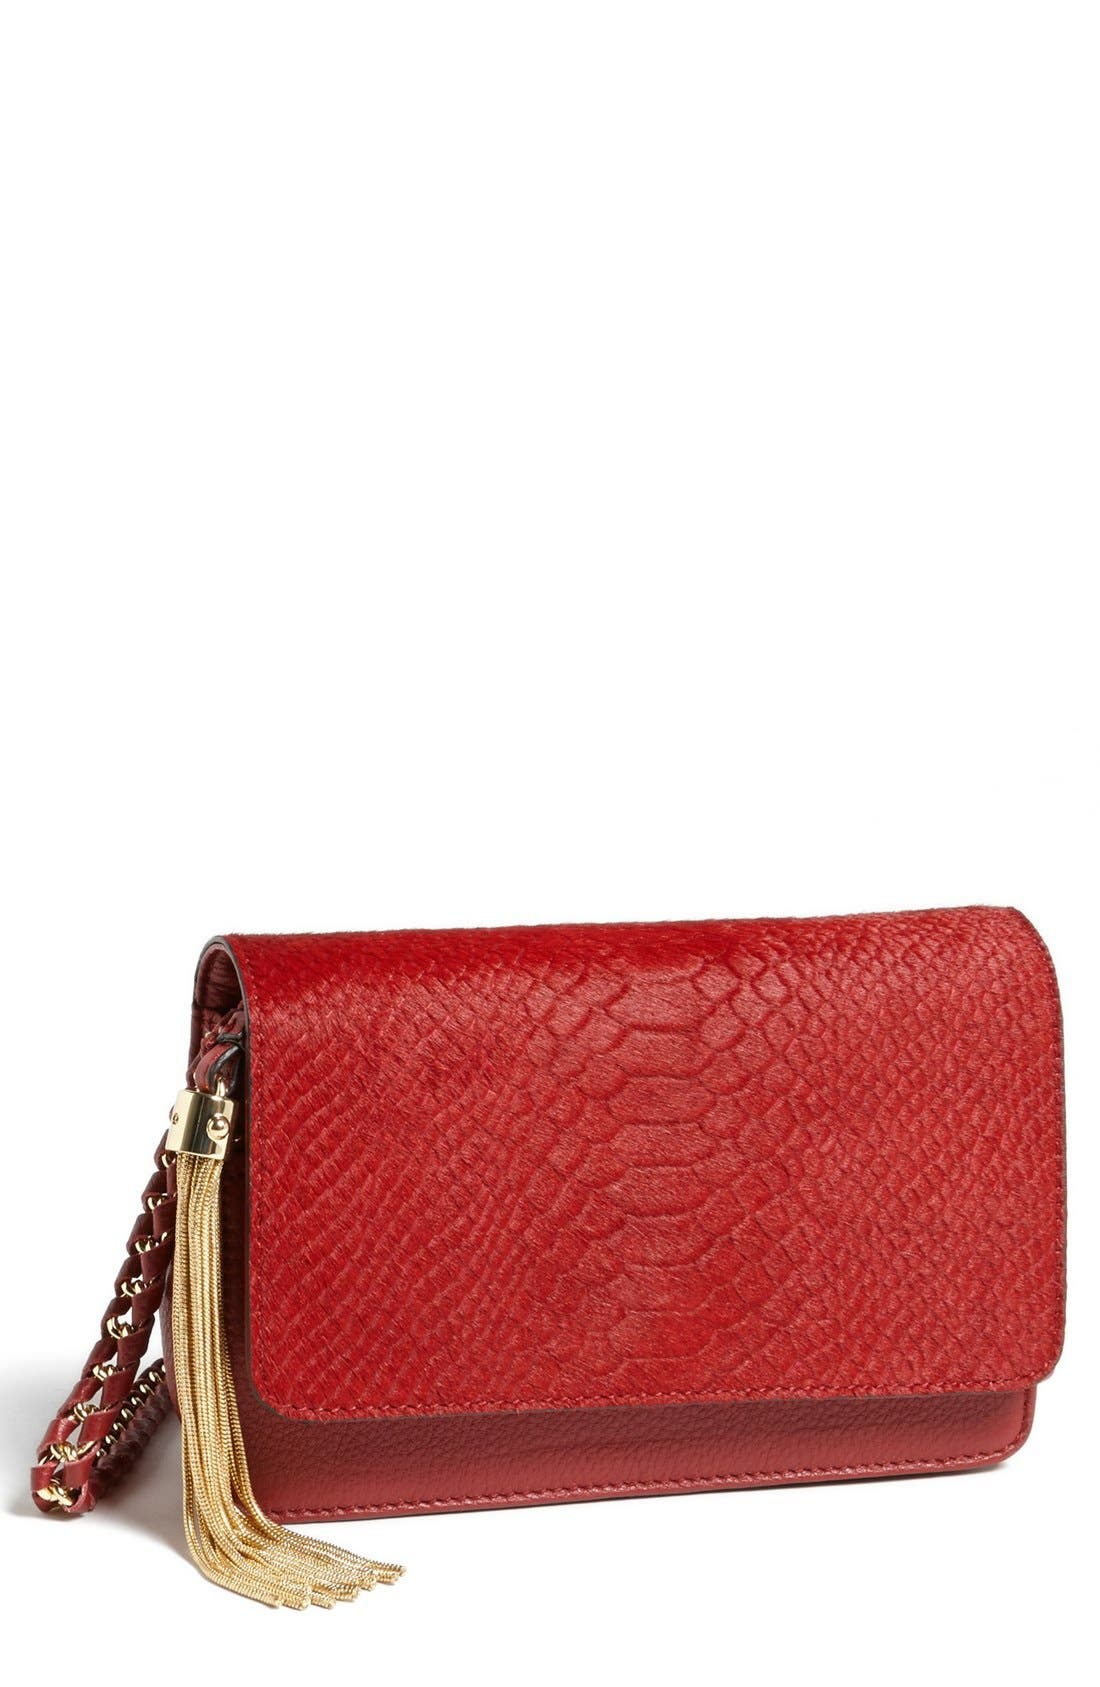 Alternate Image 1 Selected - Aimee Kestenberg 'Alexis II' Crossbody Bag